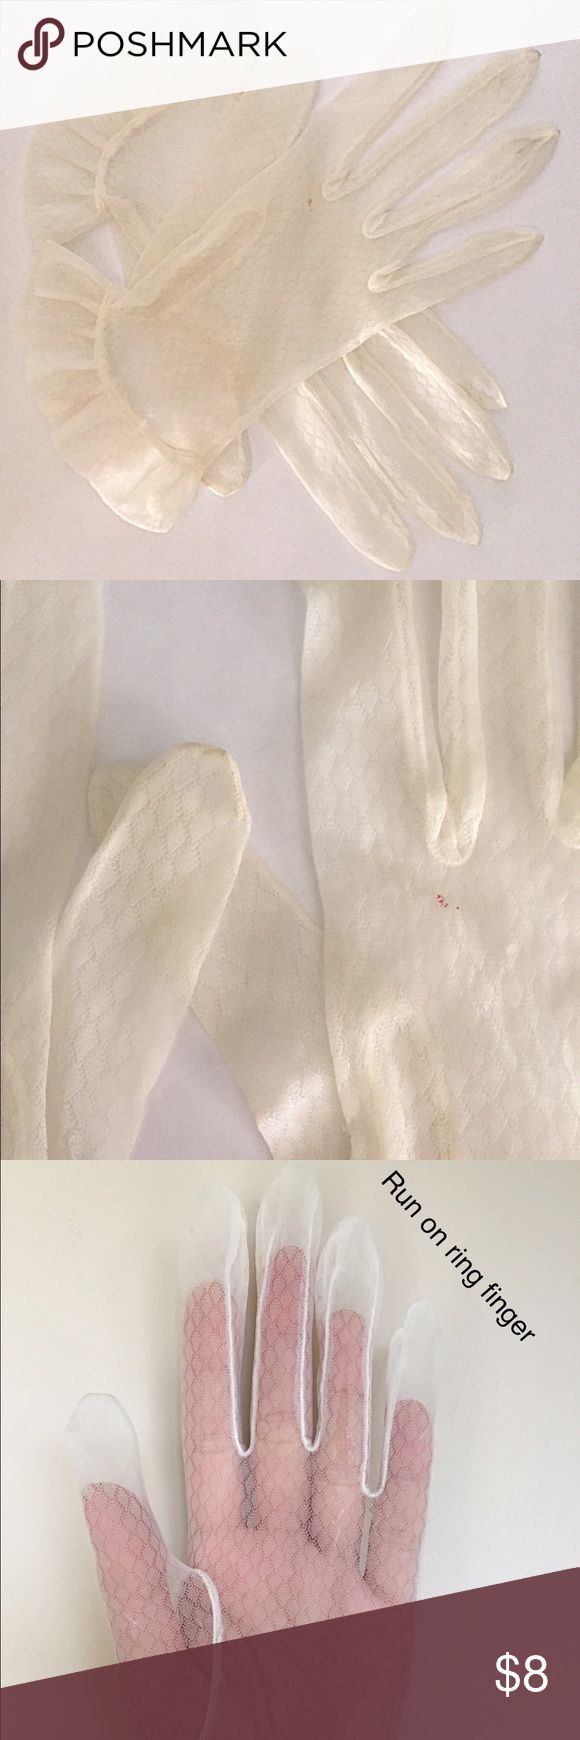 """Adorable 1950s Vintage Sheer cream Gloves 1950s  sheer cream organza gloves I wish these fit me!! Lovely little ruffle at the wrist (which has a little give) Condition: good-fair ; has some runs as shown and a few marks; haven't been soaked; still wearable with caution Measurements: best for a small ish hand; 2 7/8"""" across knuckles; 8 1/2"""" mid finger to cuff; 3"""" middle finger; 2 1/2"""" wrist opening with a little stretch Vintage Accessories Gloves & Mittens"""